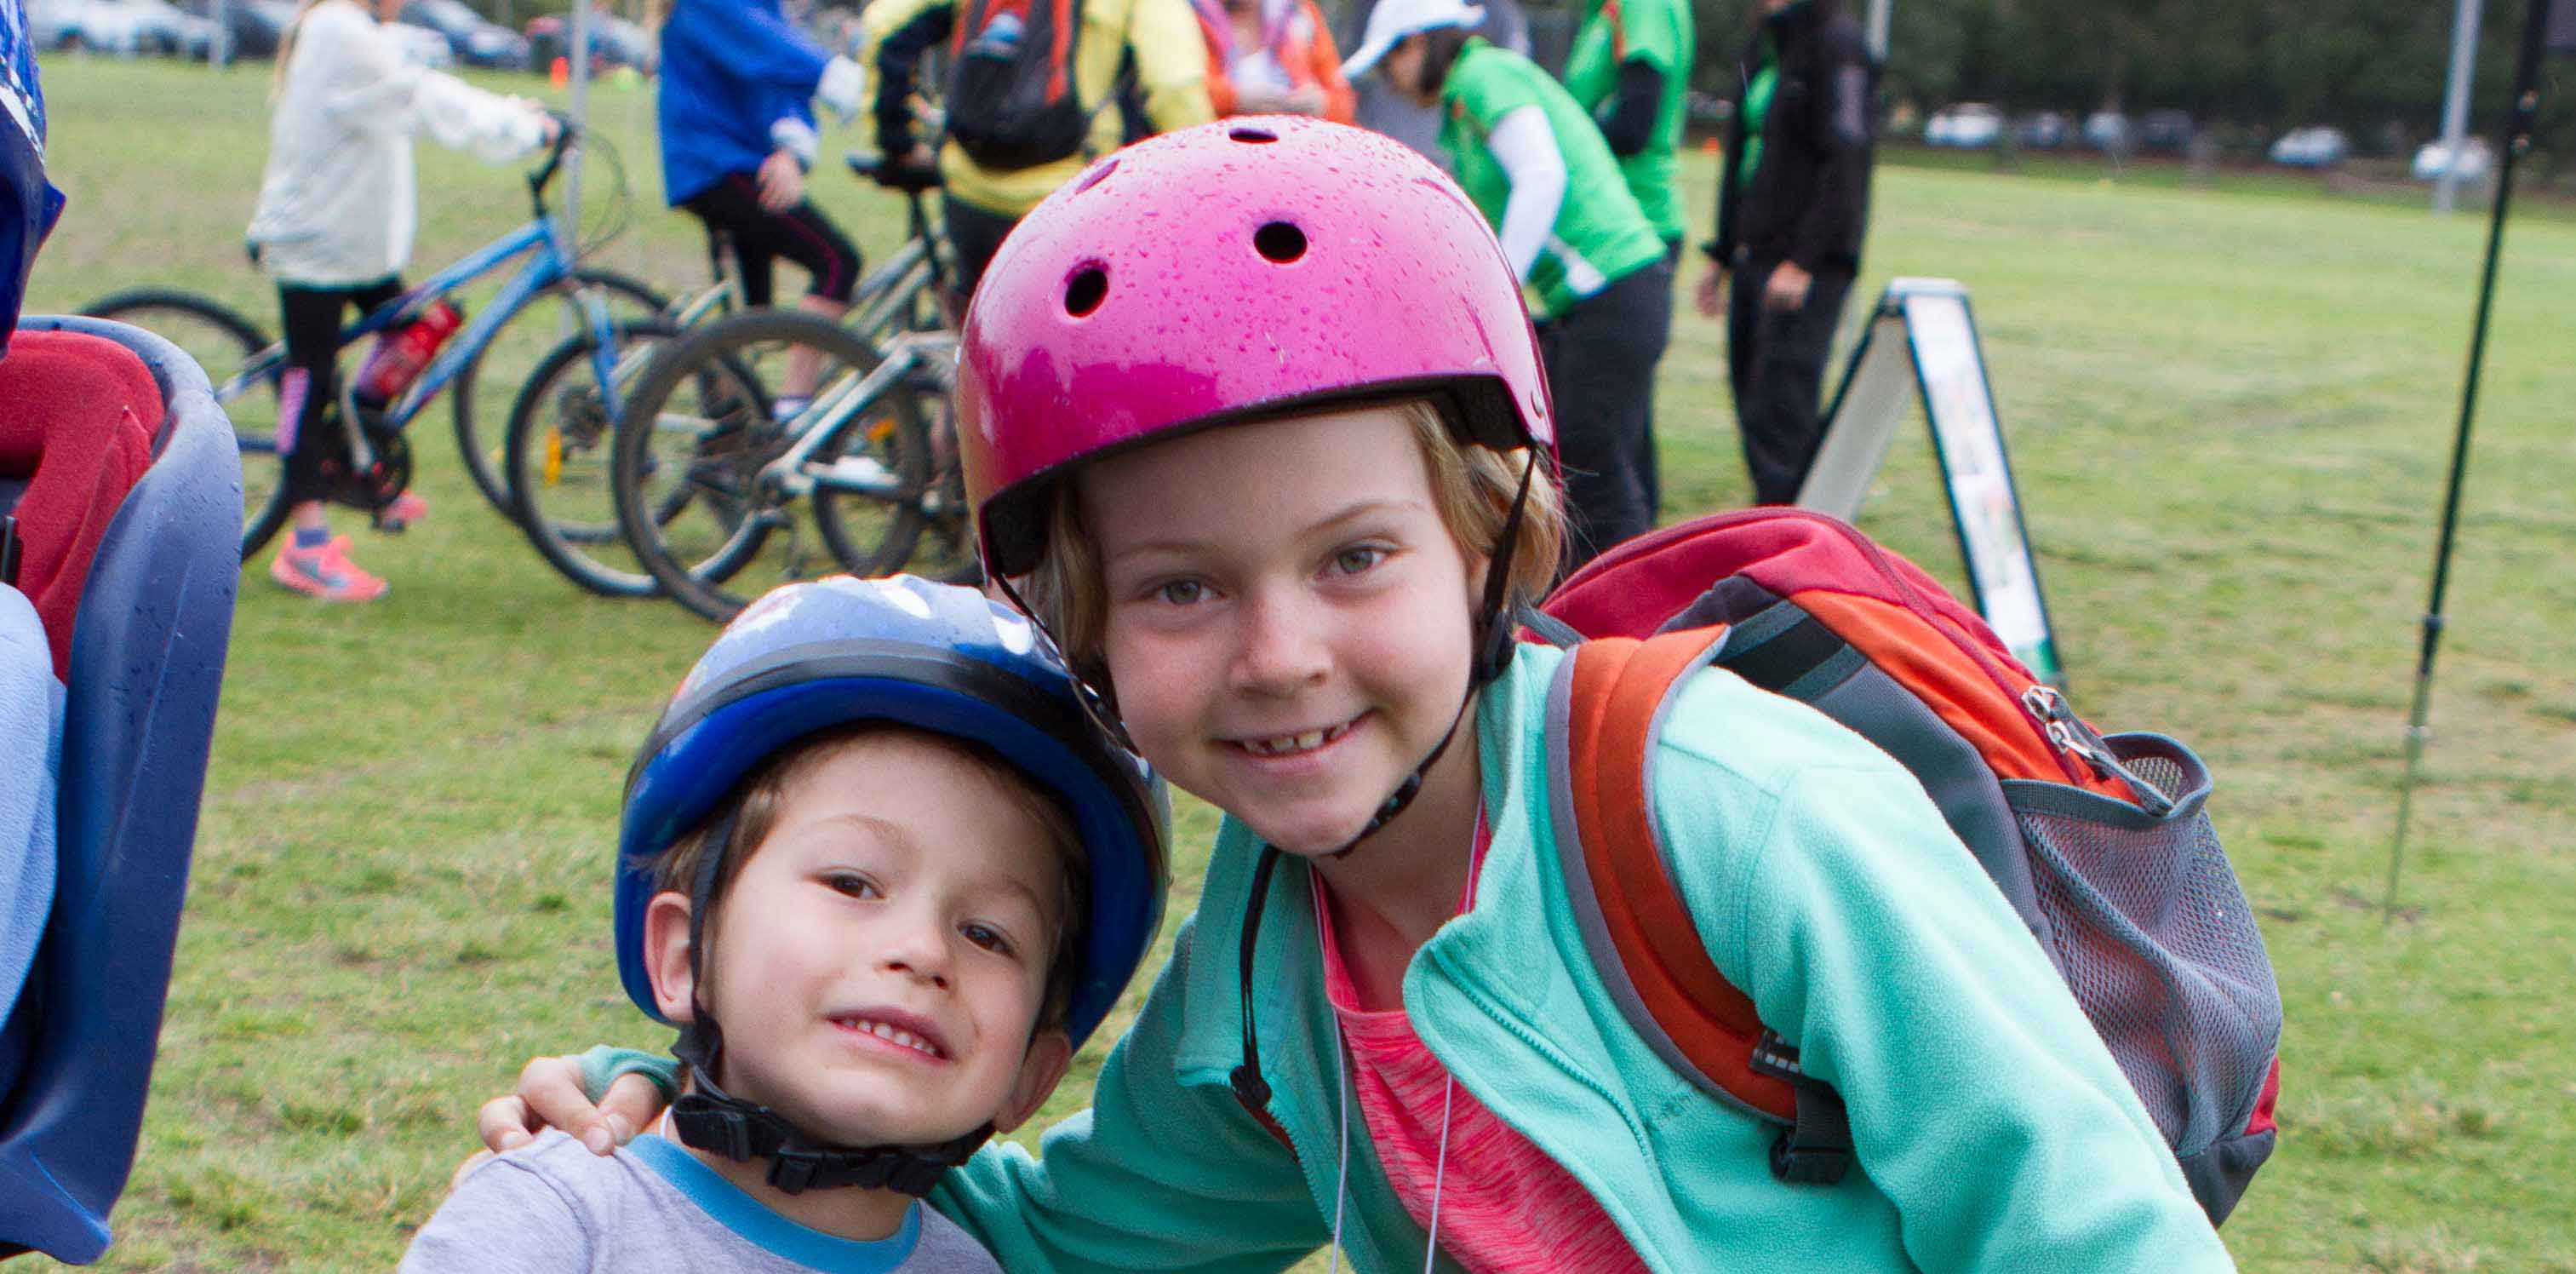 Council is offering two free Kids Bike Skills workshops to help kids improve their bike skills in Bike Week 2018